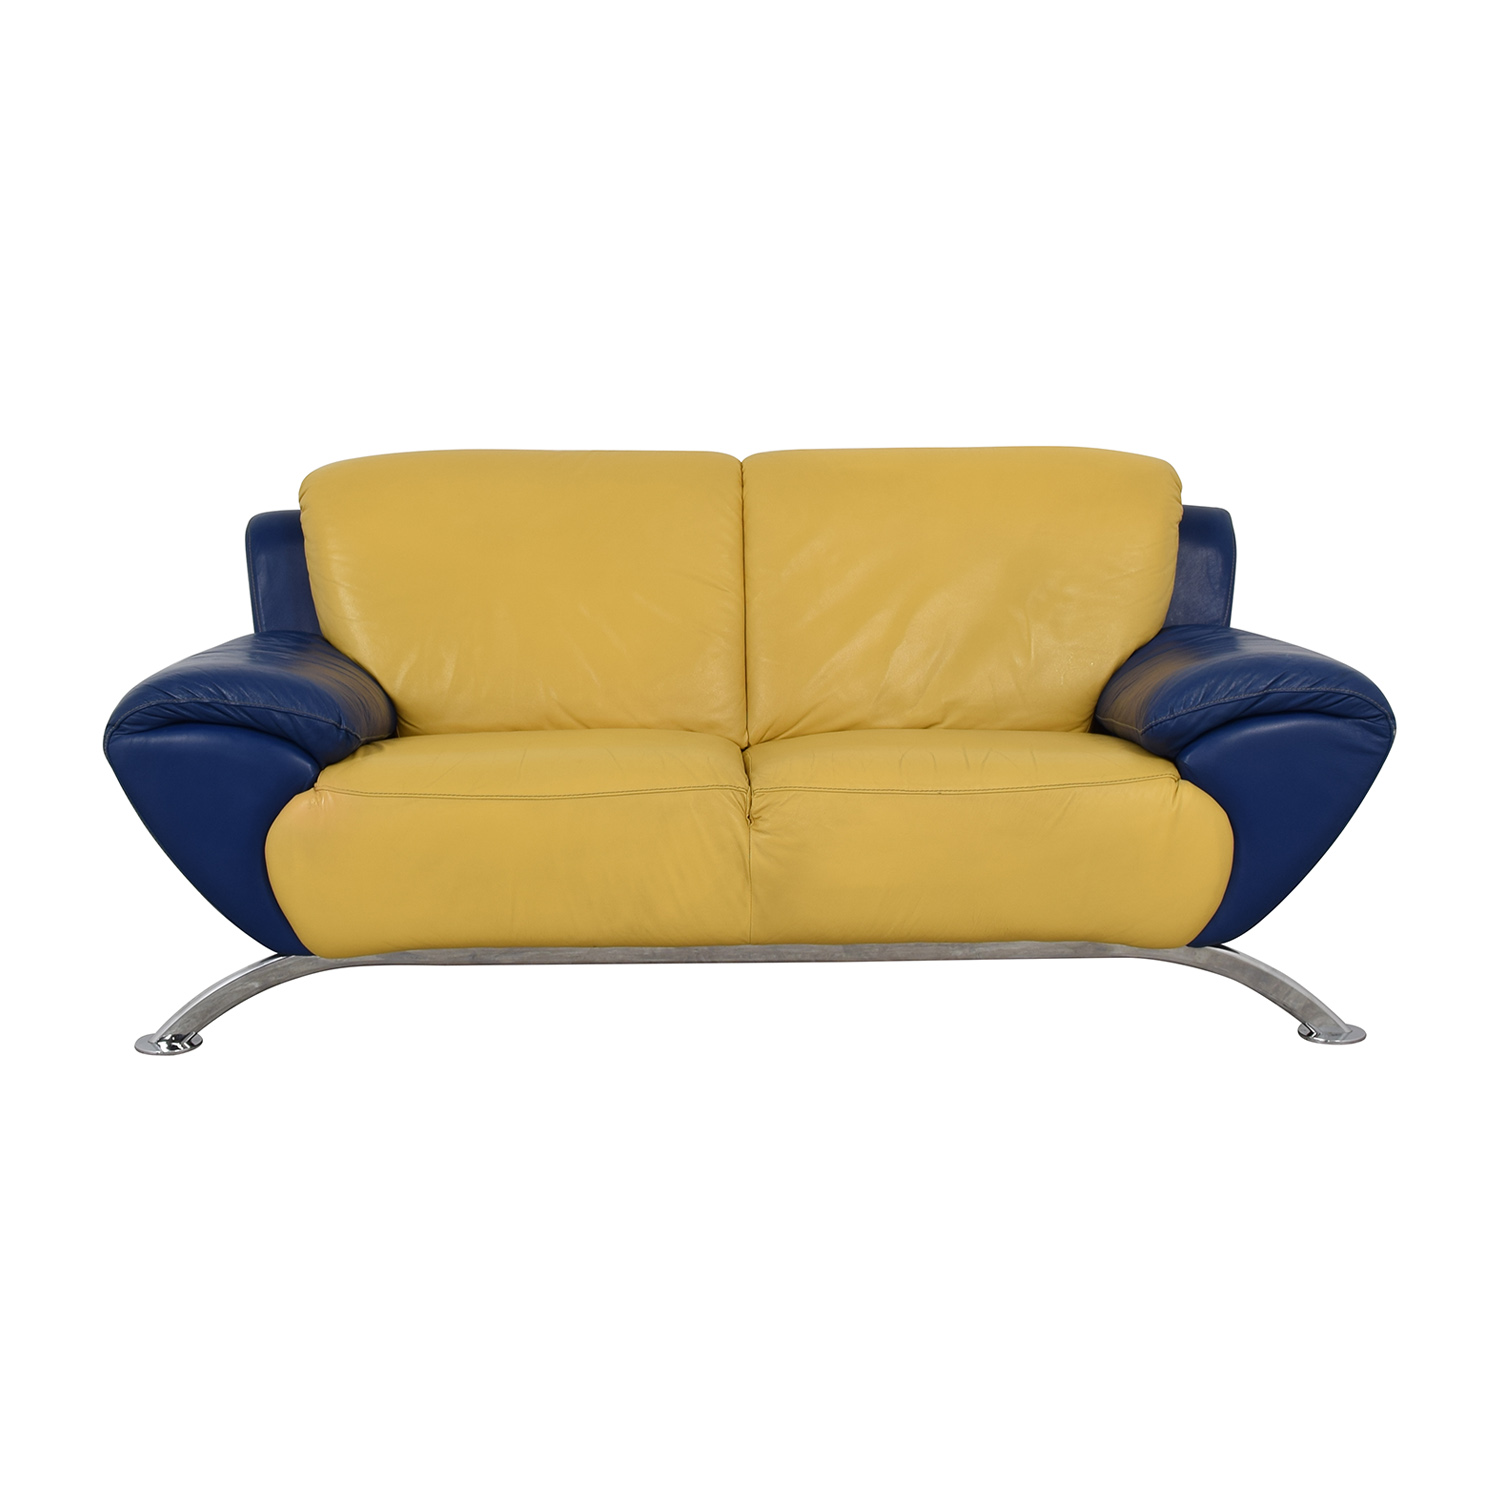 buy Modern Yellow and Blue Leather Two Cushion Sofa  Classic Sofas